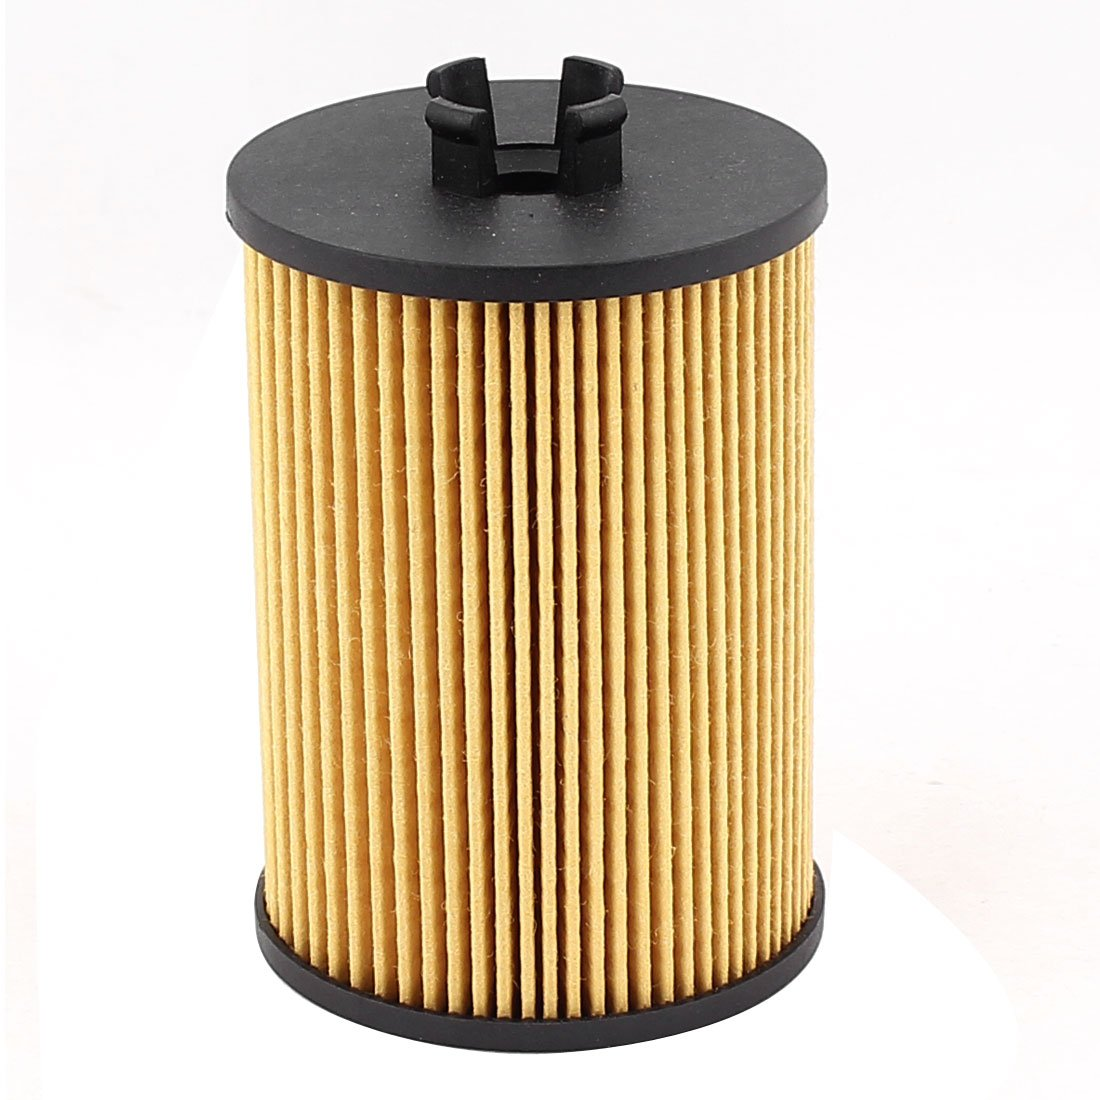 Uxcell Car Engine Cartridge Oil Filter W Seal Rings Fuel Filters 2009 Pt Cruiser Amazon Canada